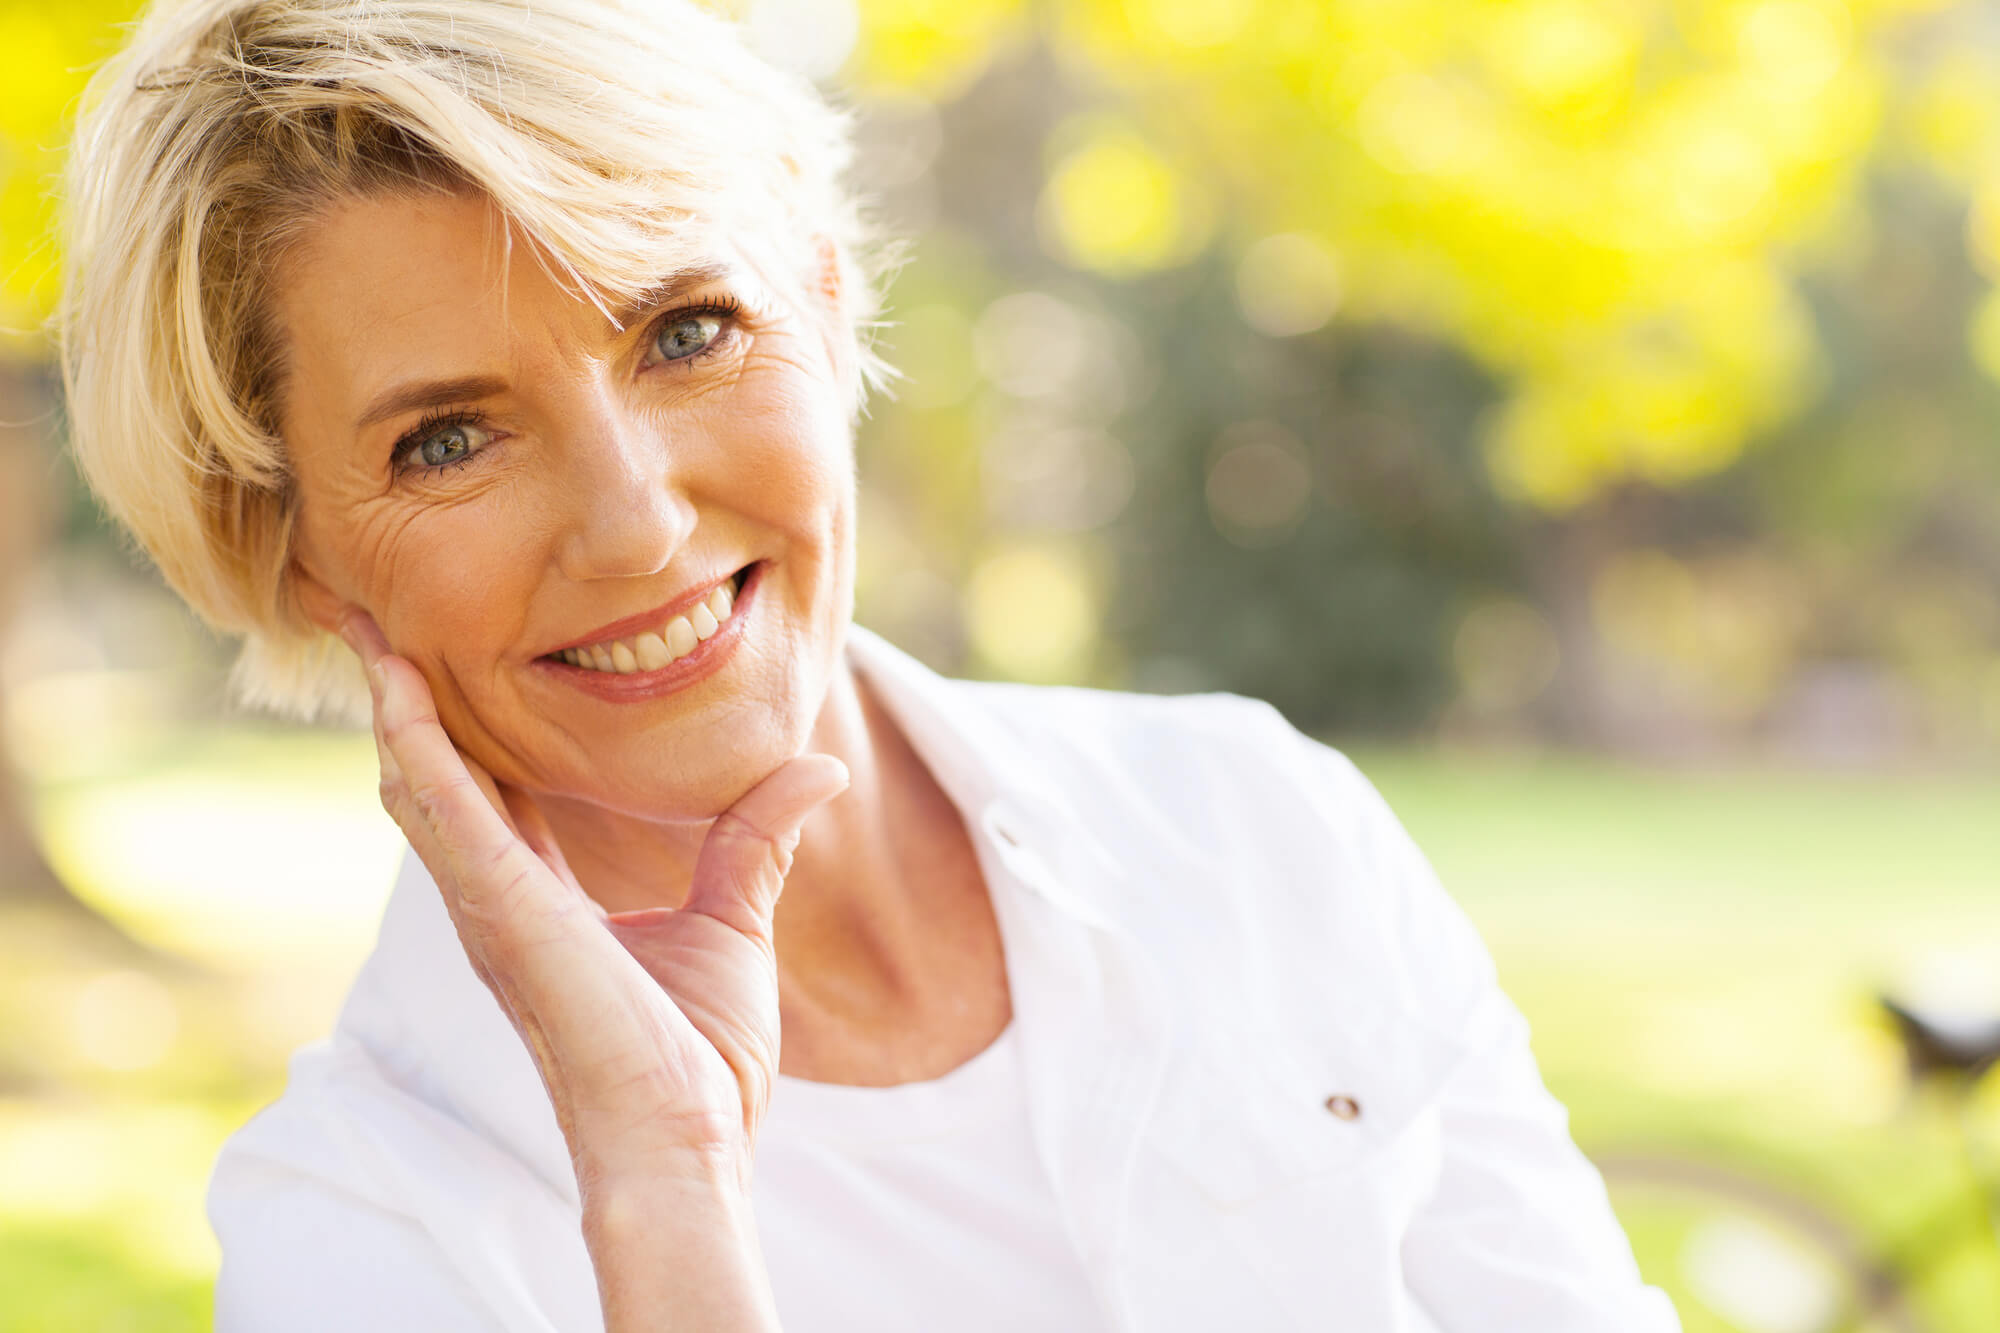 where can i get the best dental implants in west palm beach?